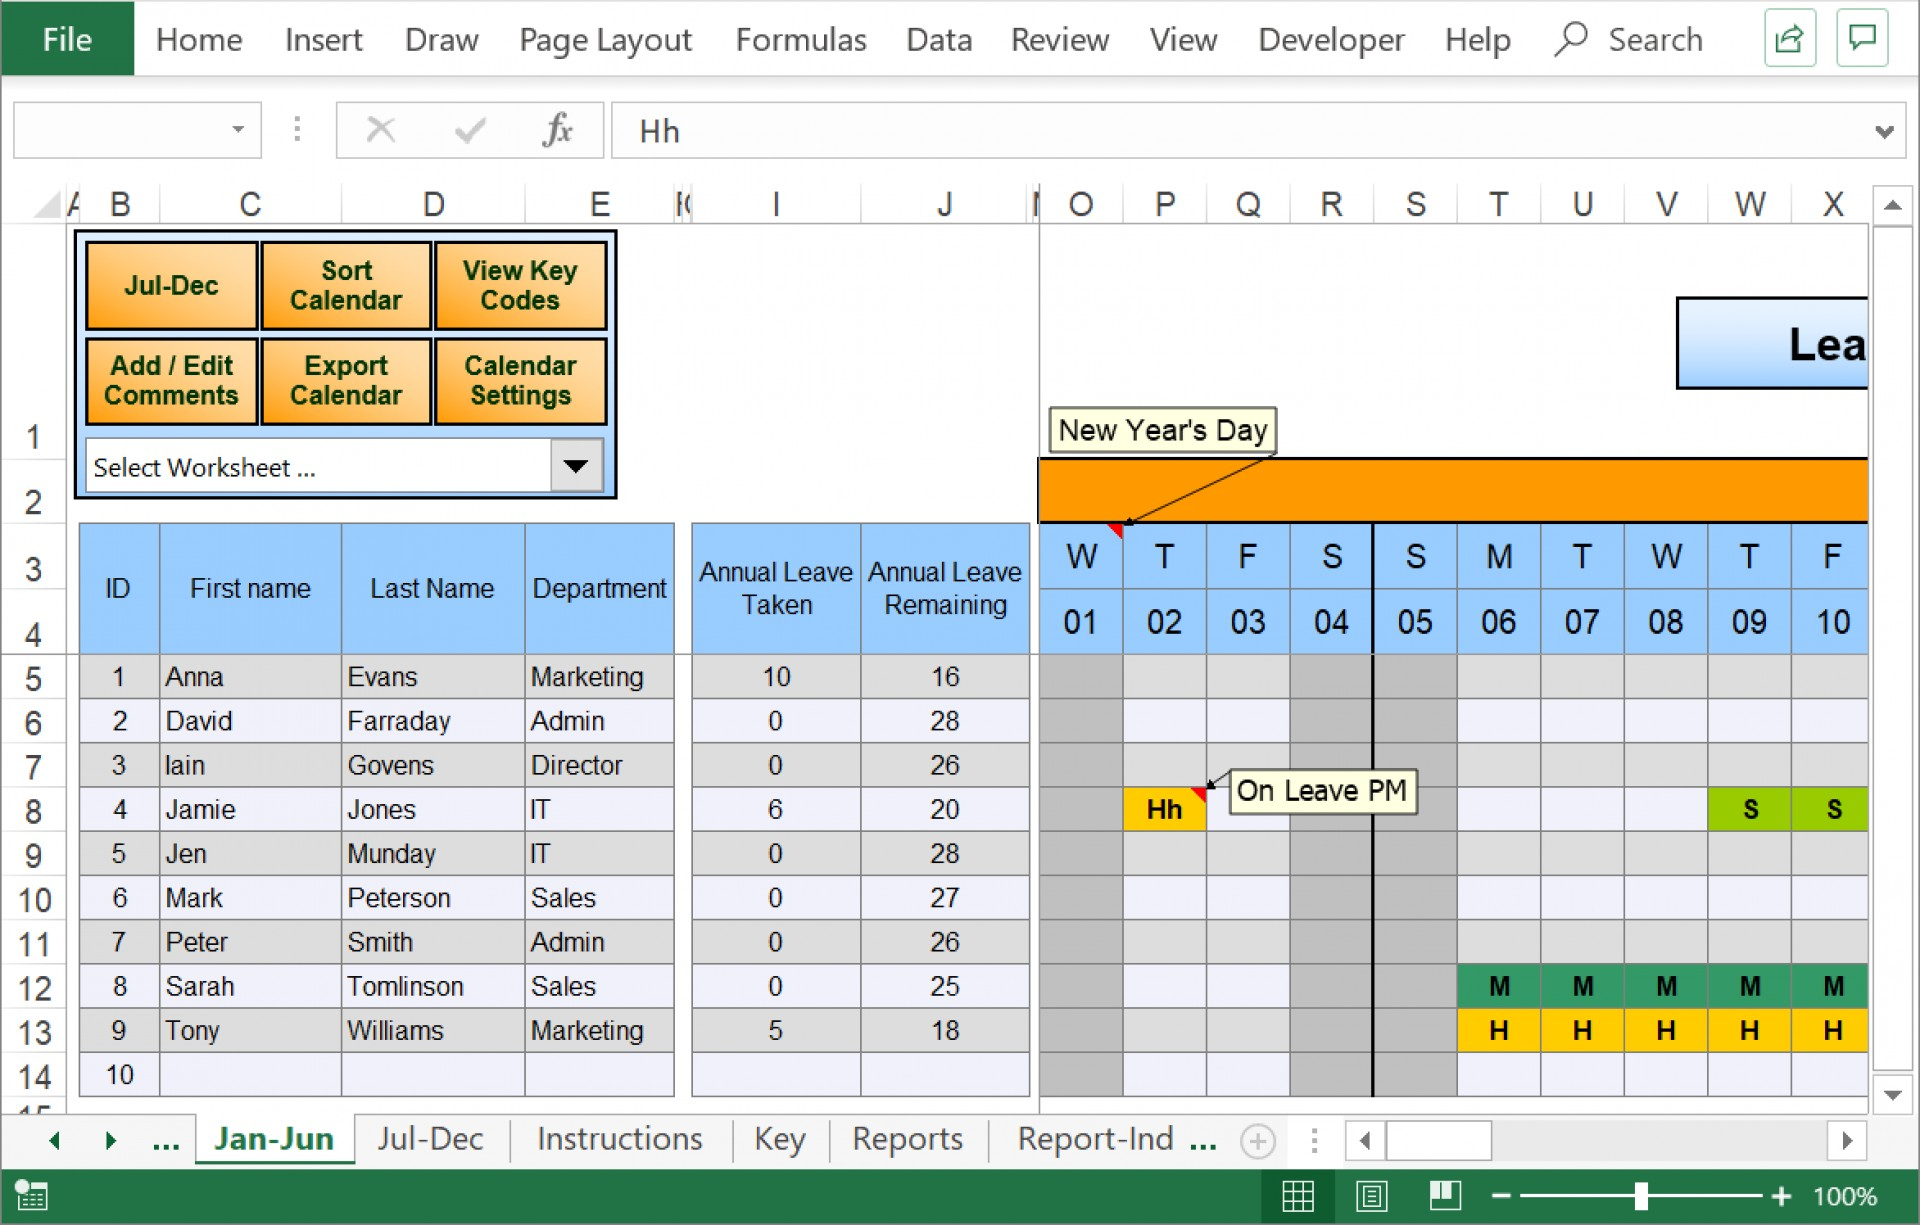 006 Employee Vacation Planner Template Excel Free Ideas